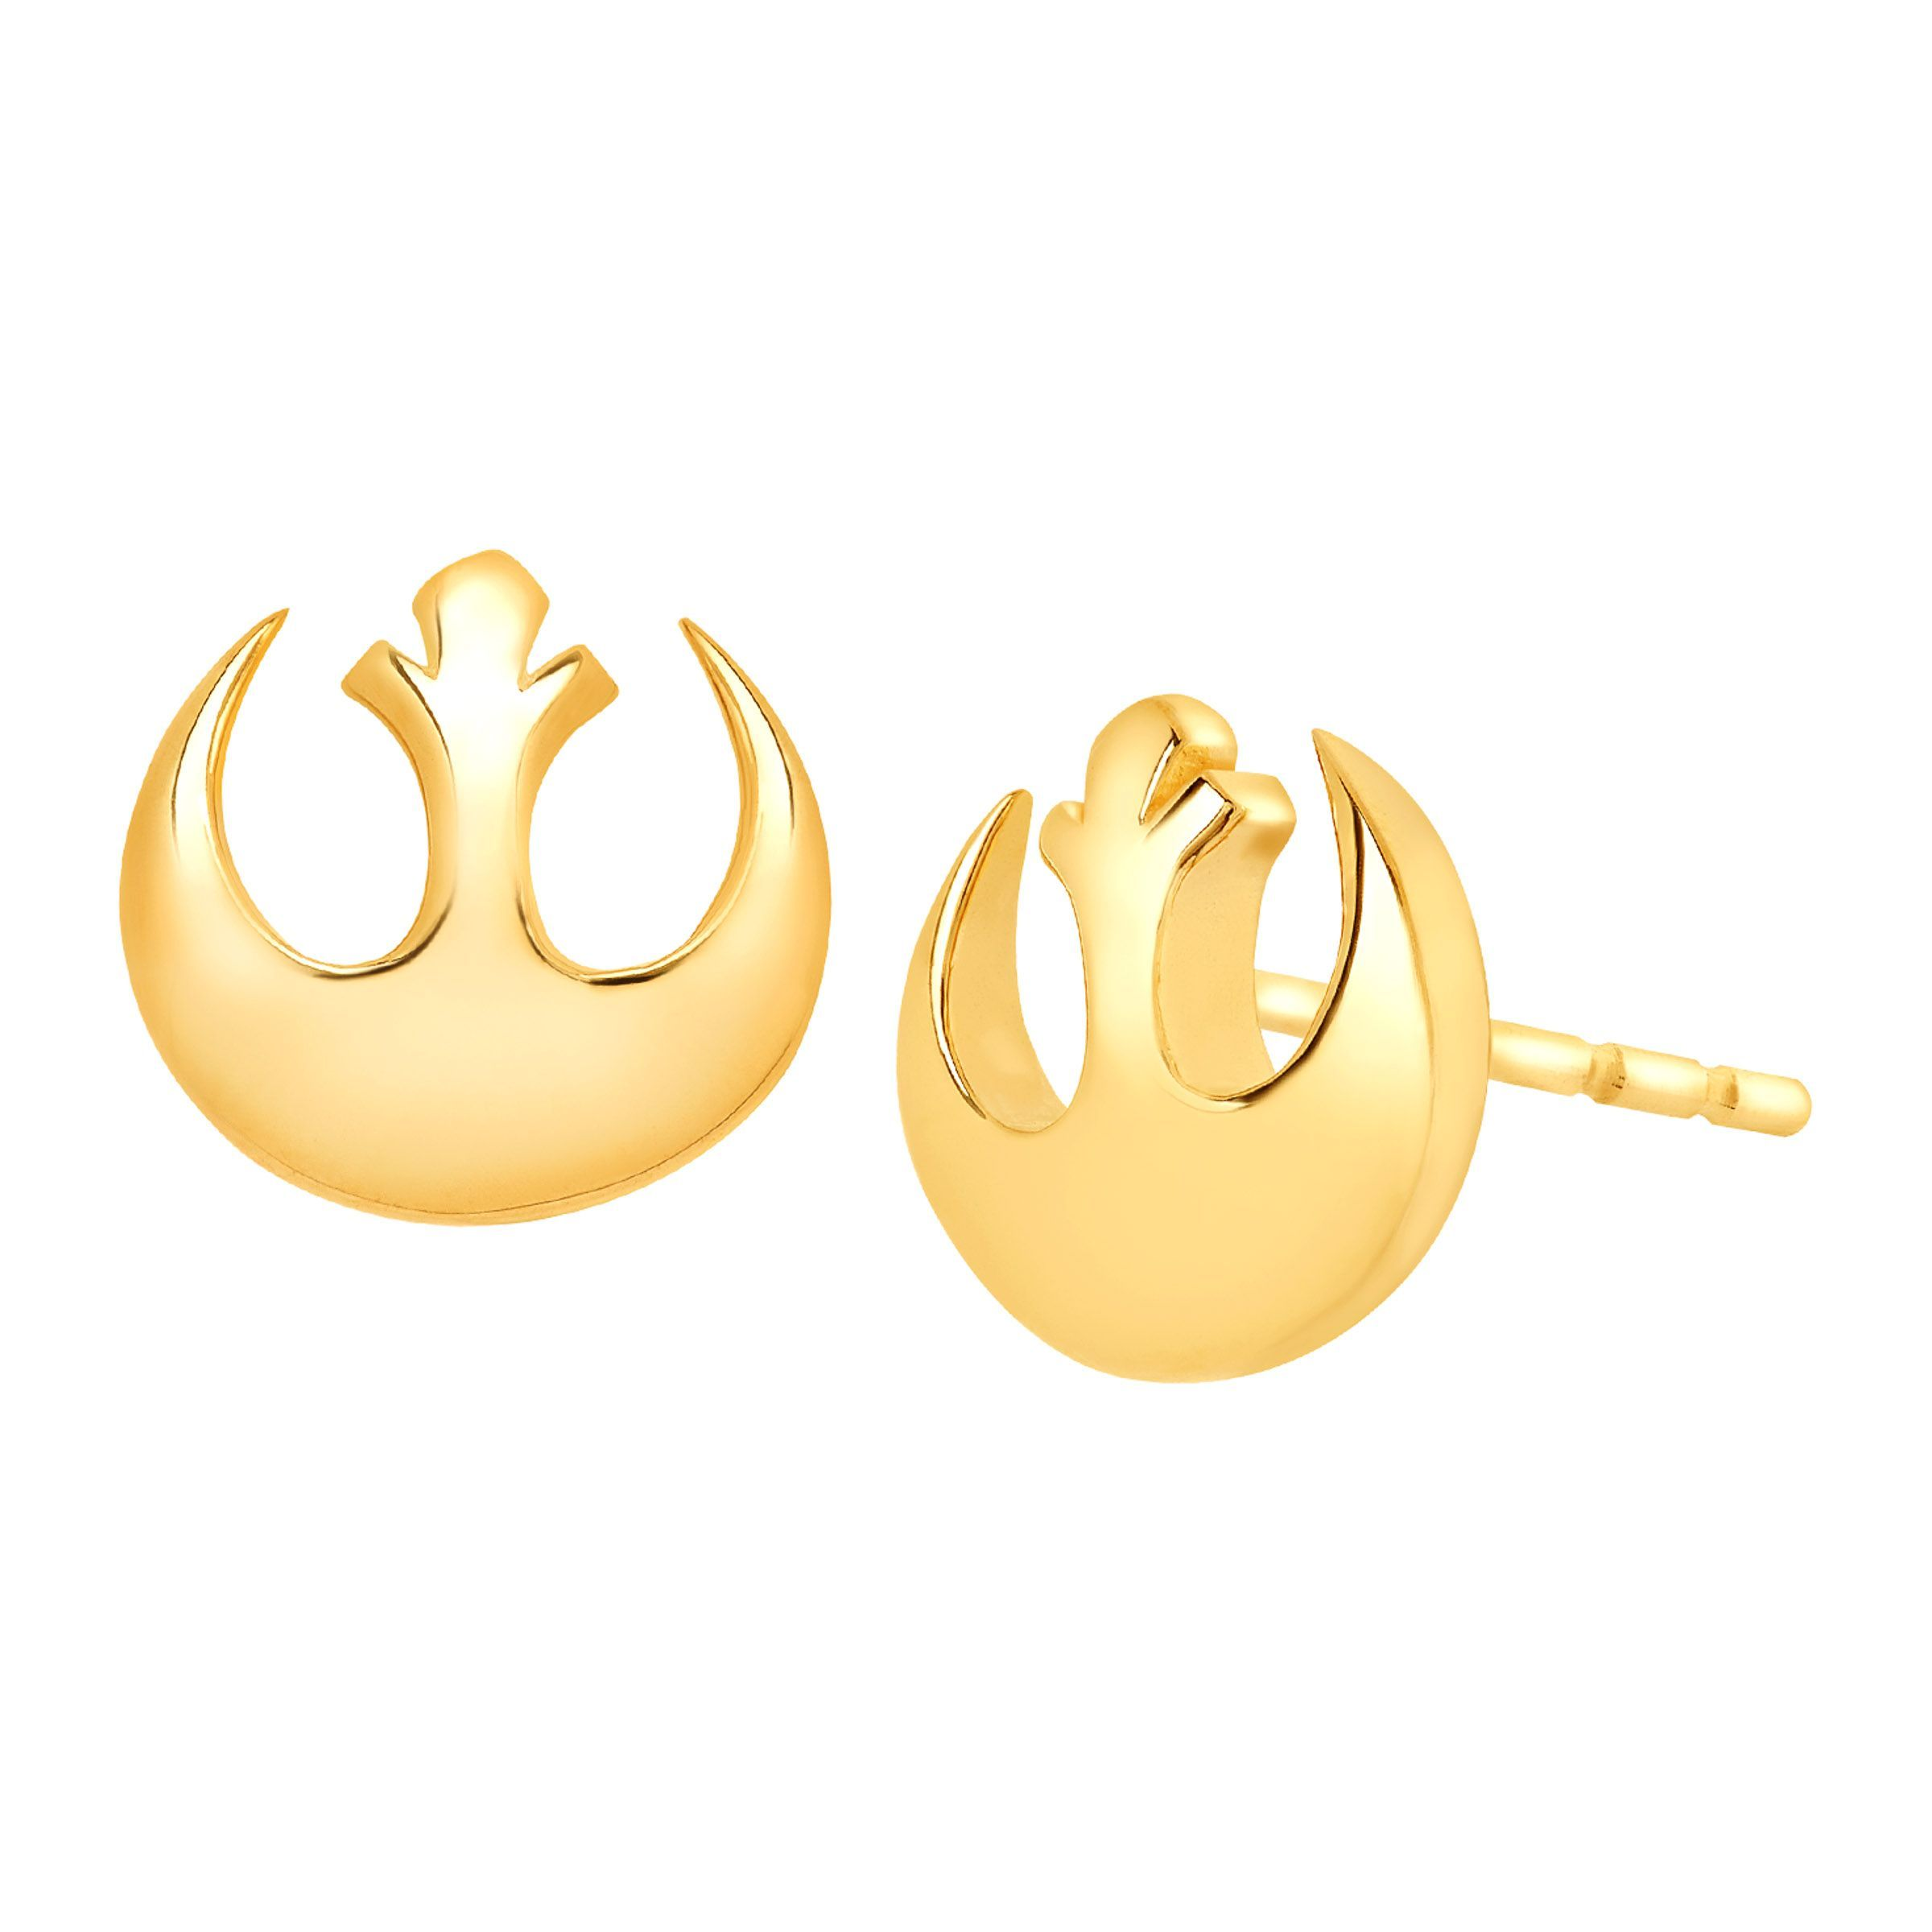 in pearl collections round of jewellery earrings products m stone mother over stud gold